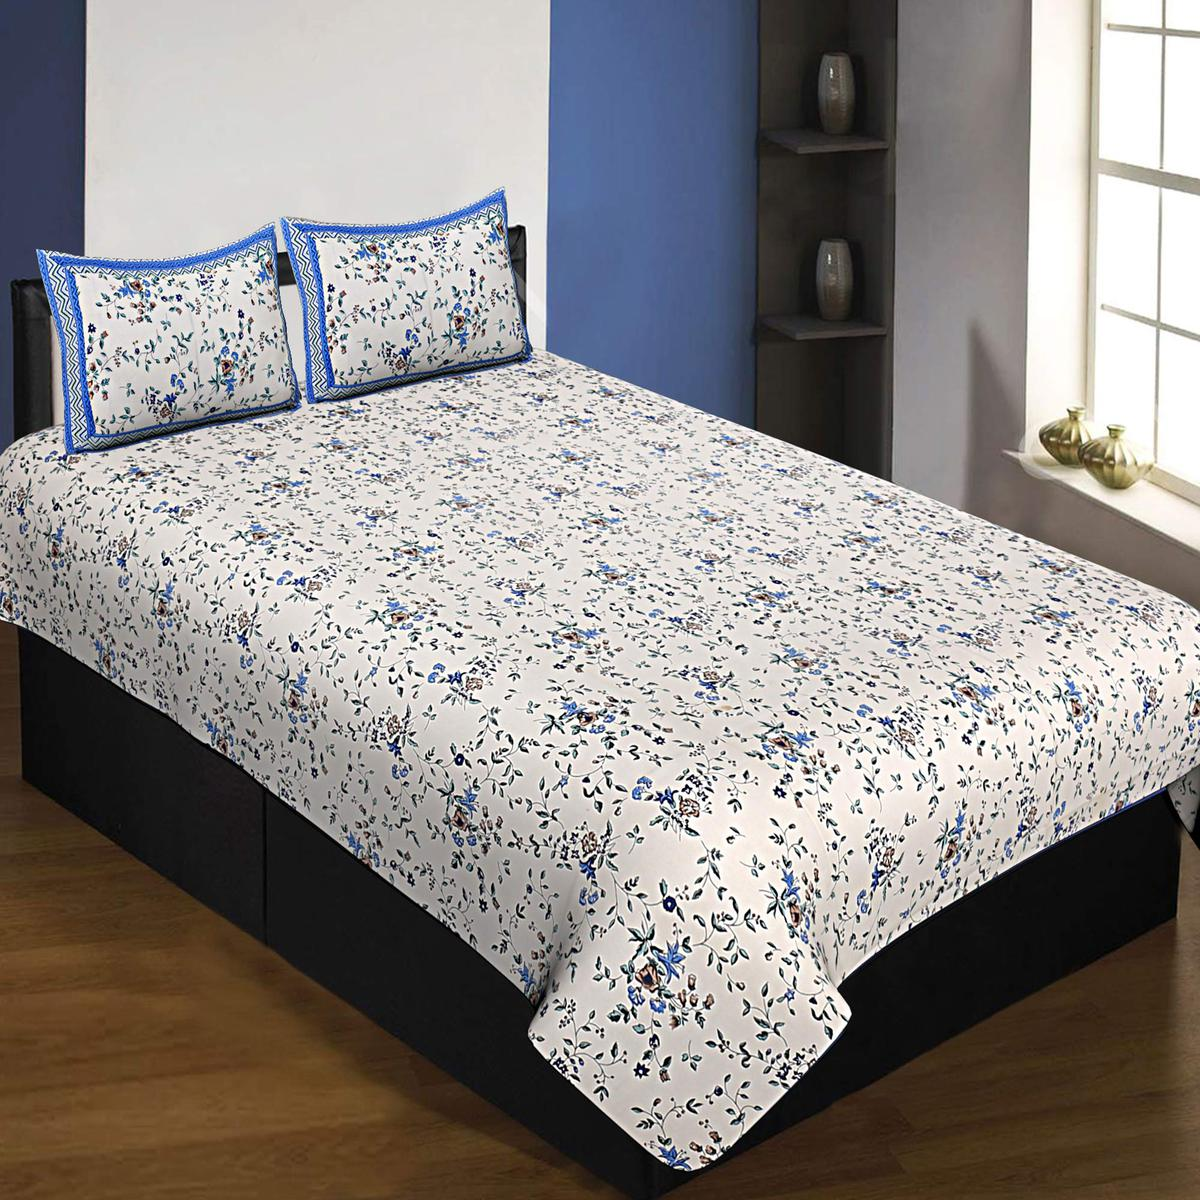 Trendy White-Blue Colored Floral Printed Cotton Queen Size Bedsheet With Pillow Cover Set